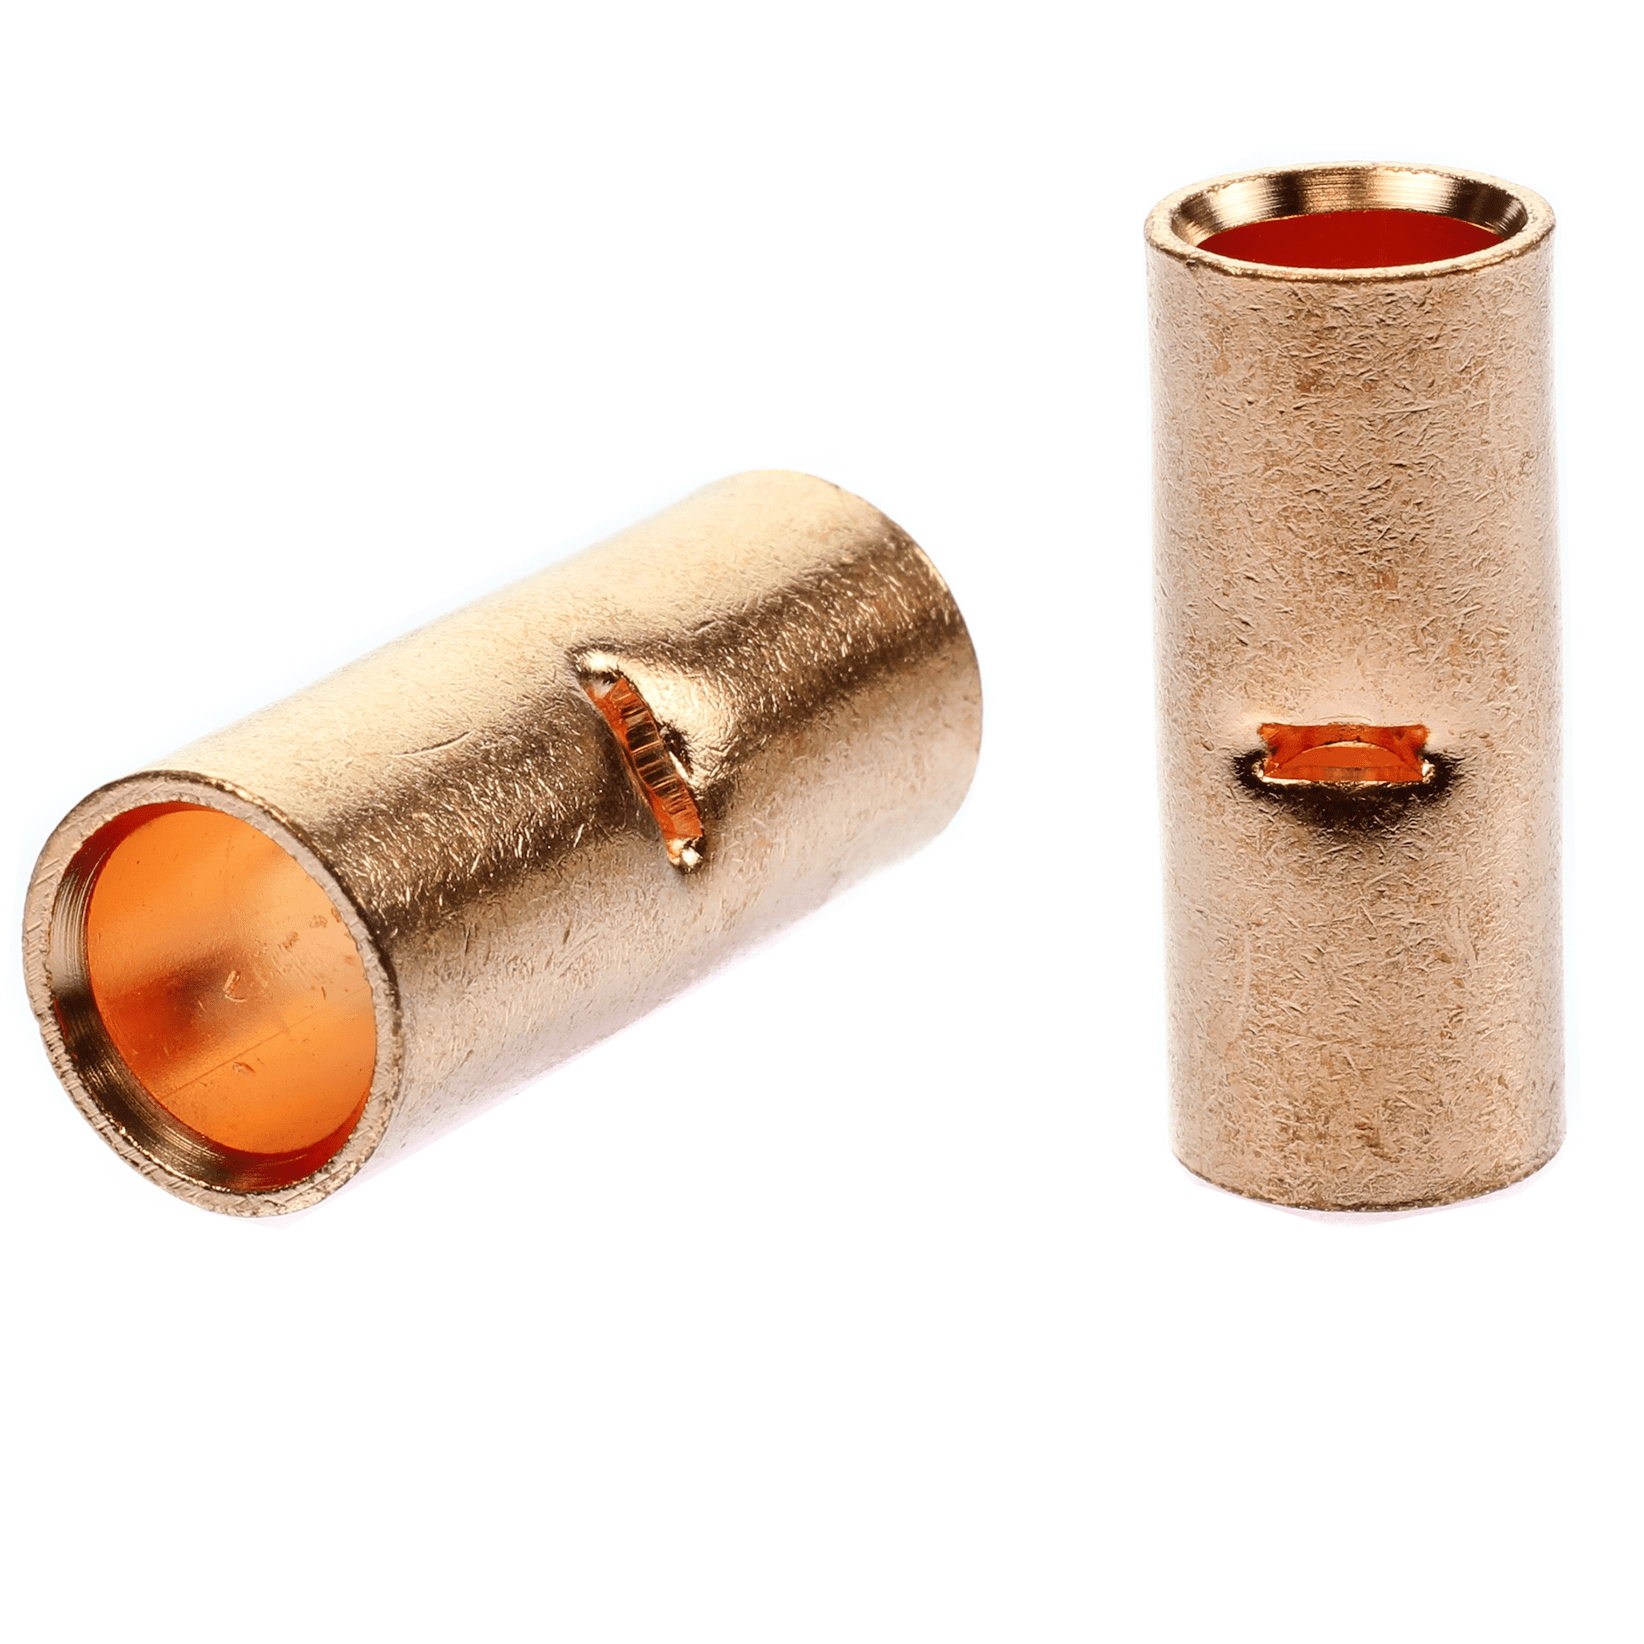 hight resolution of details about 2 2 0 awg gauge wire copper butt connector awg crimp terminal qty 2